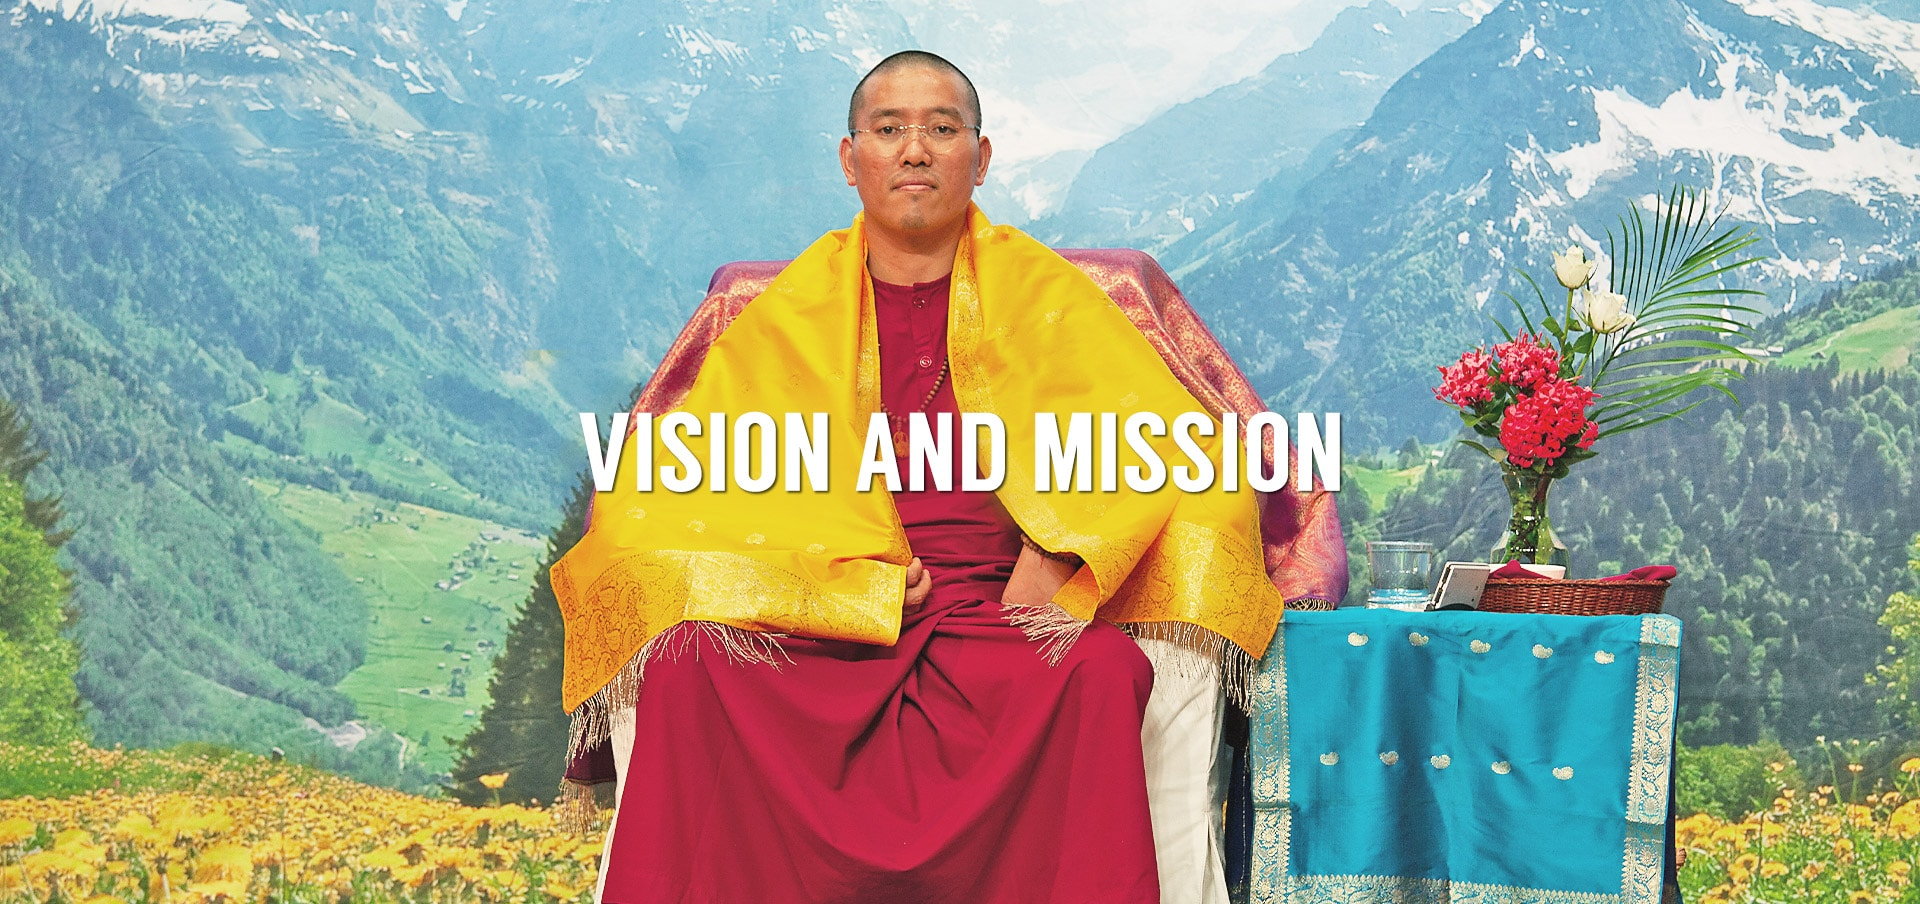 Sri Avinash Vision and Mission - Live to Love, Love to Serve